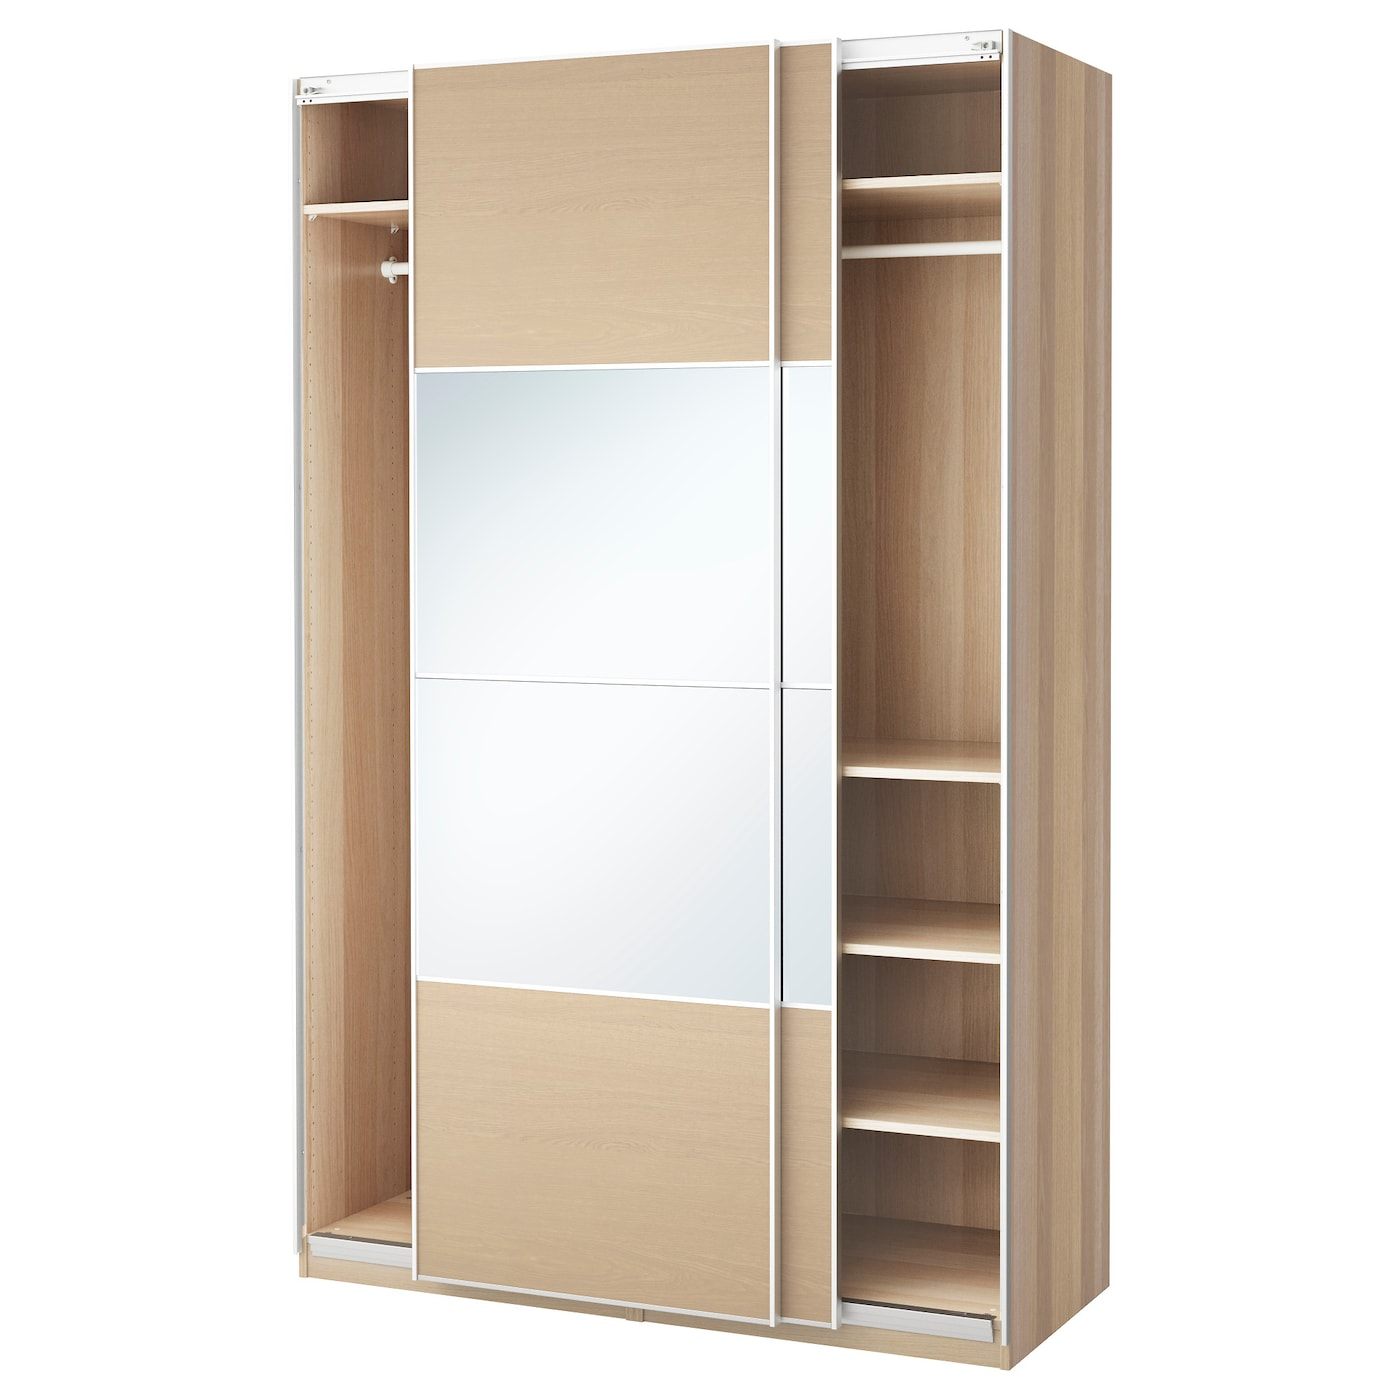 Caisson pour dressing ikea 20170602065430 for Armoire dressing but